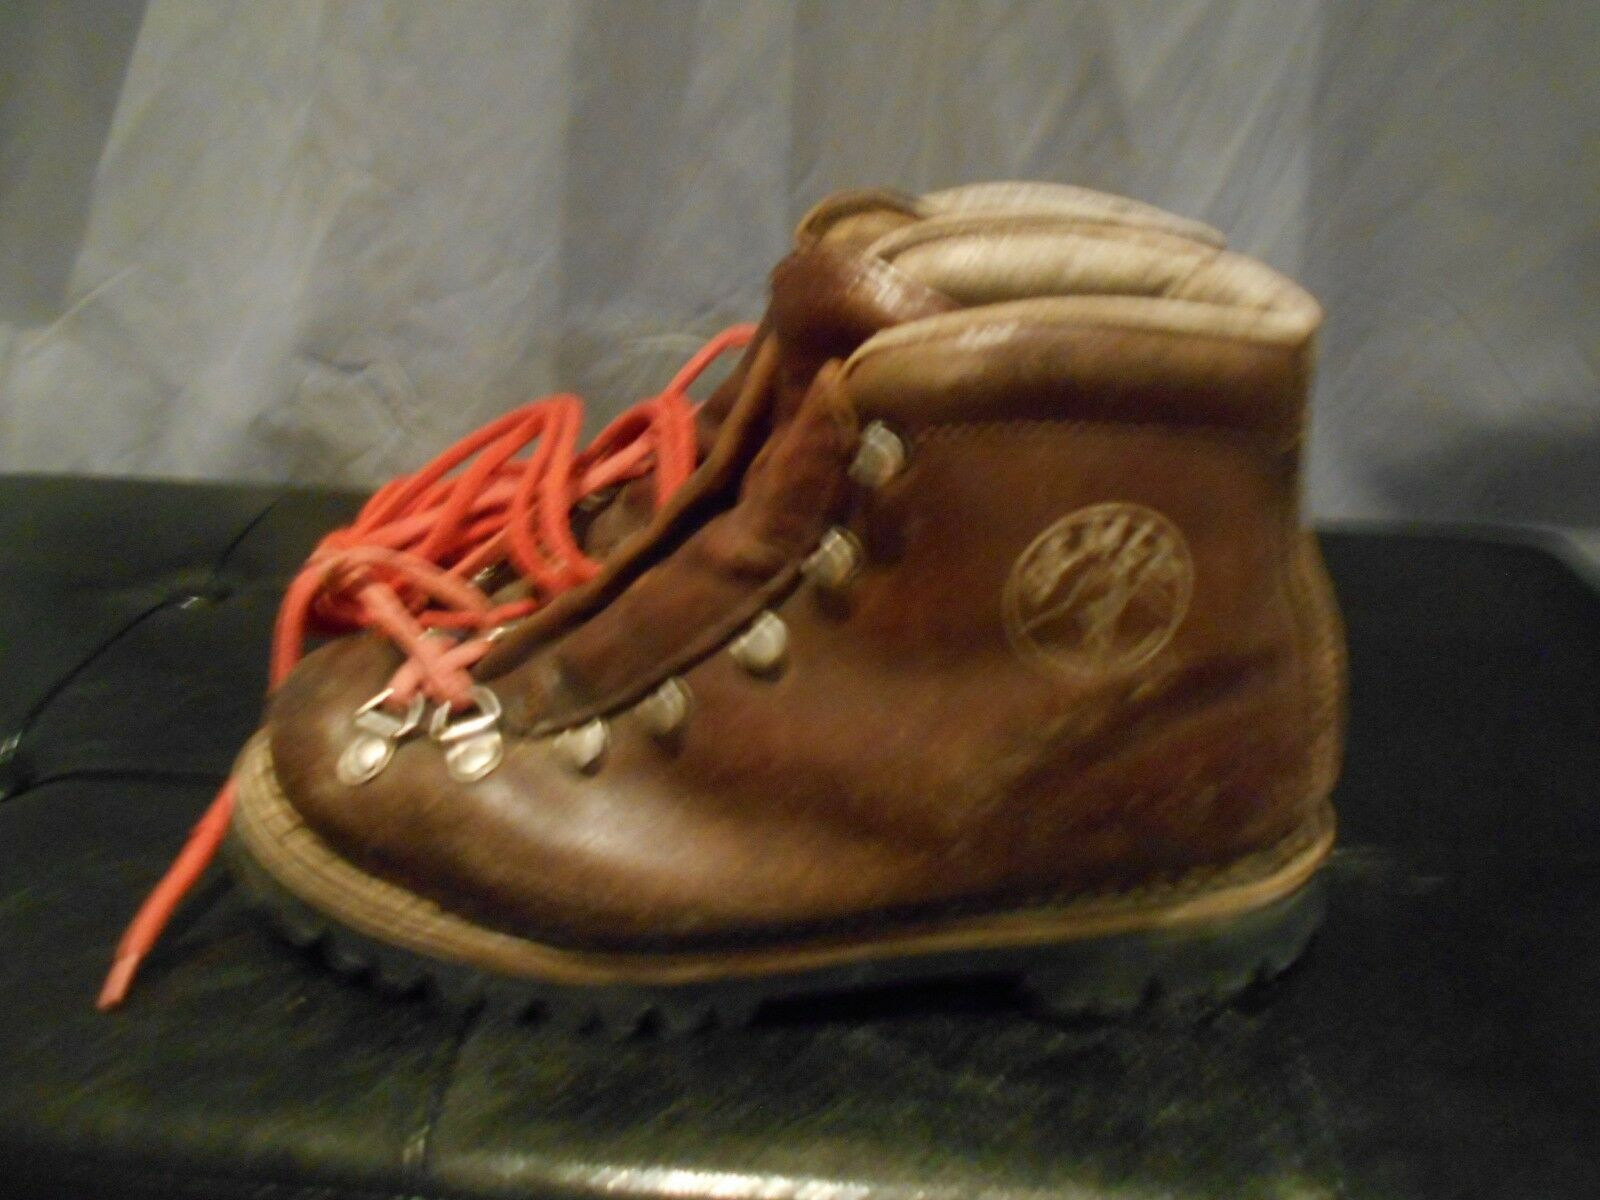 RARES CHAUSSURES MARCHE VARAPPE SEMLY MARRON T A 38 TBE A T 36€ ACH IMM FP  RED MOND eb419a 11636c51d3c